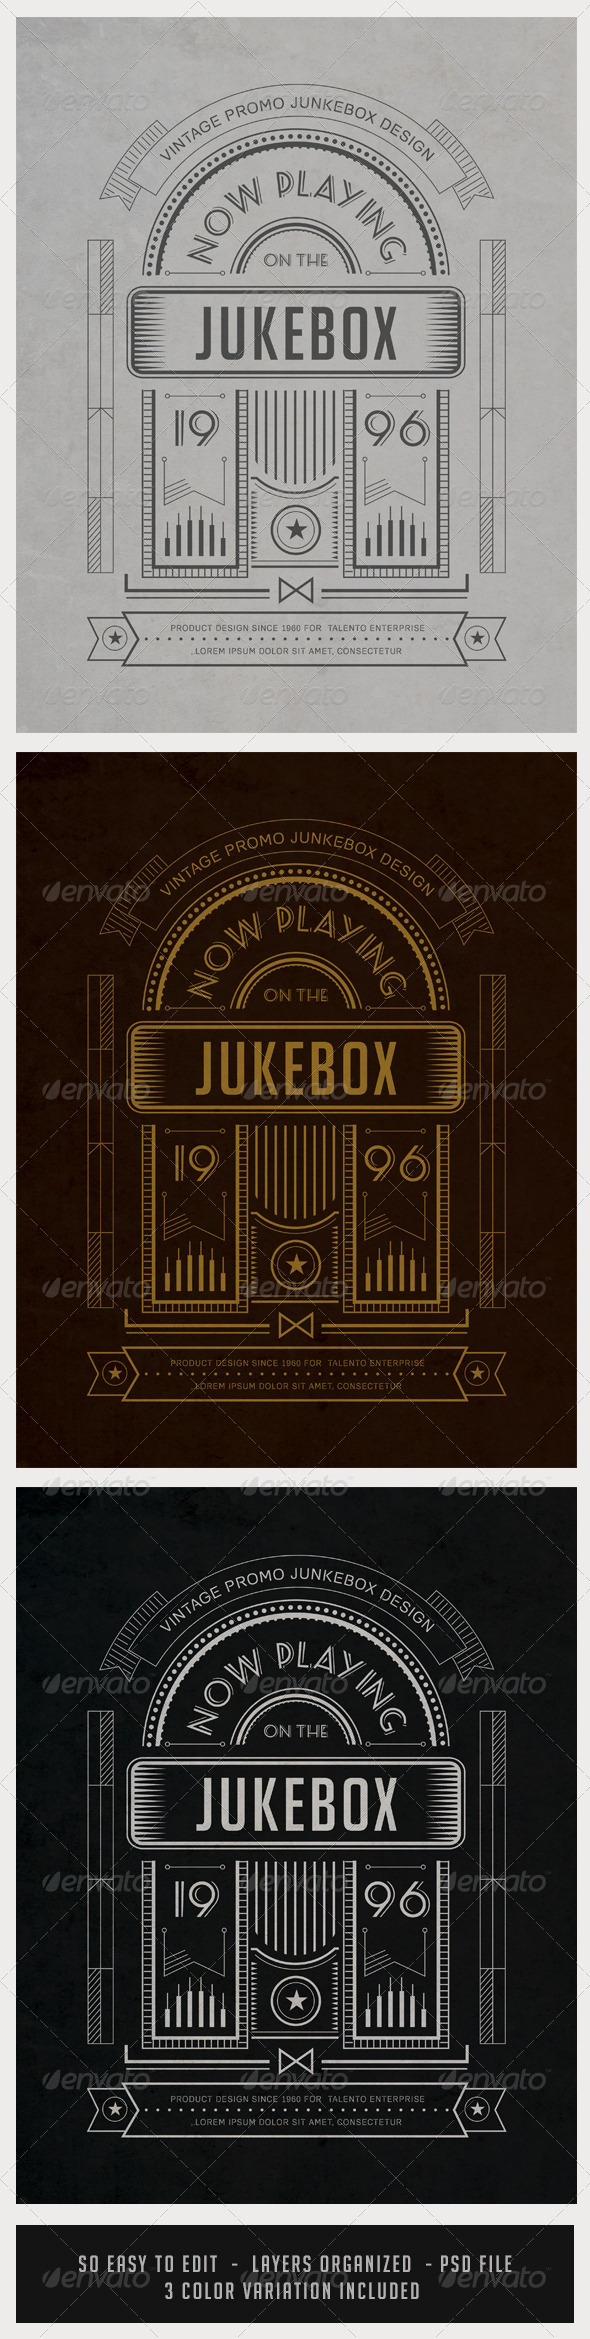 GraphicRiver Vintage Junkebox Poster with Shape Layers 7218429